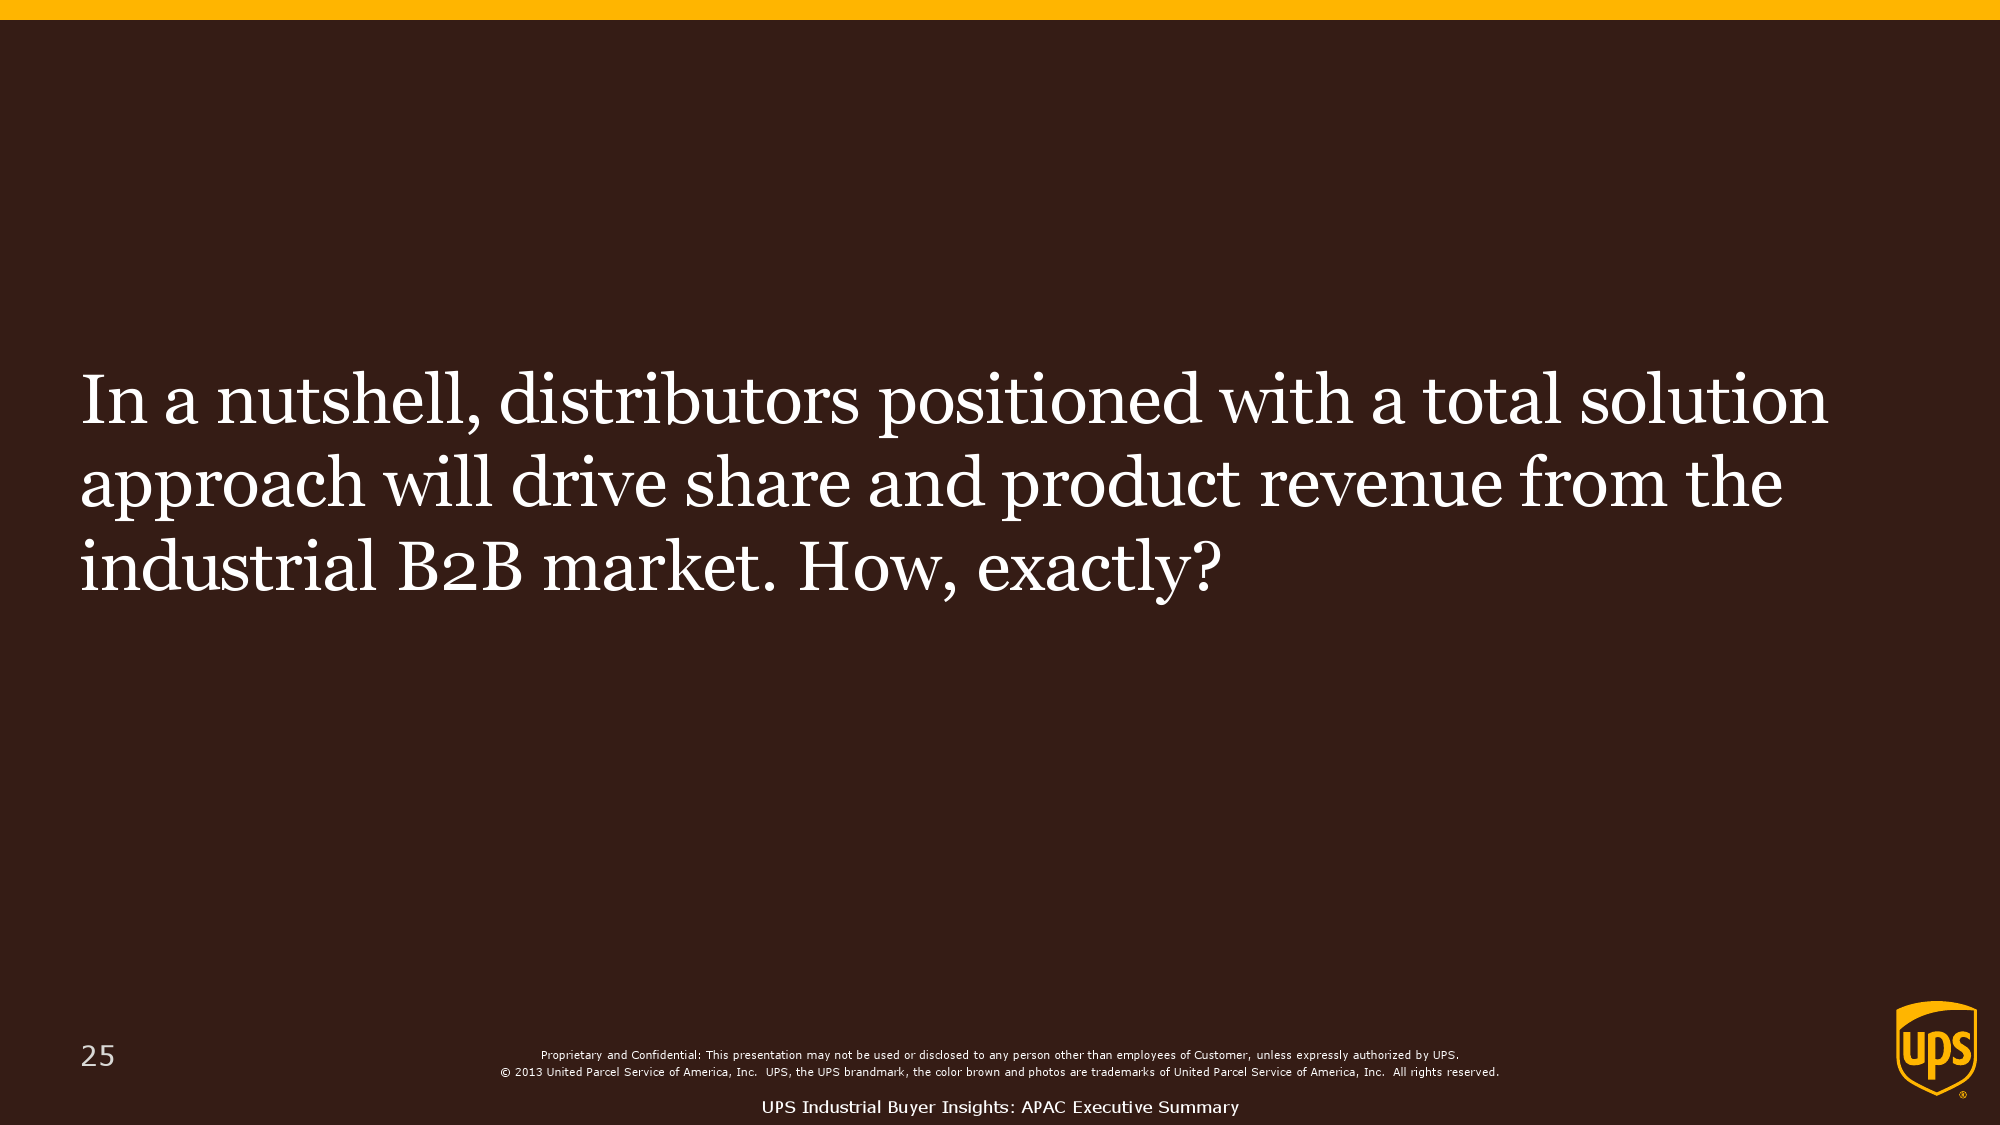 2015 Purchasers Insights Study_Exec Summary_APAC_000025